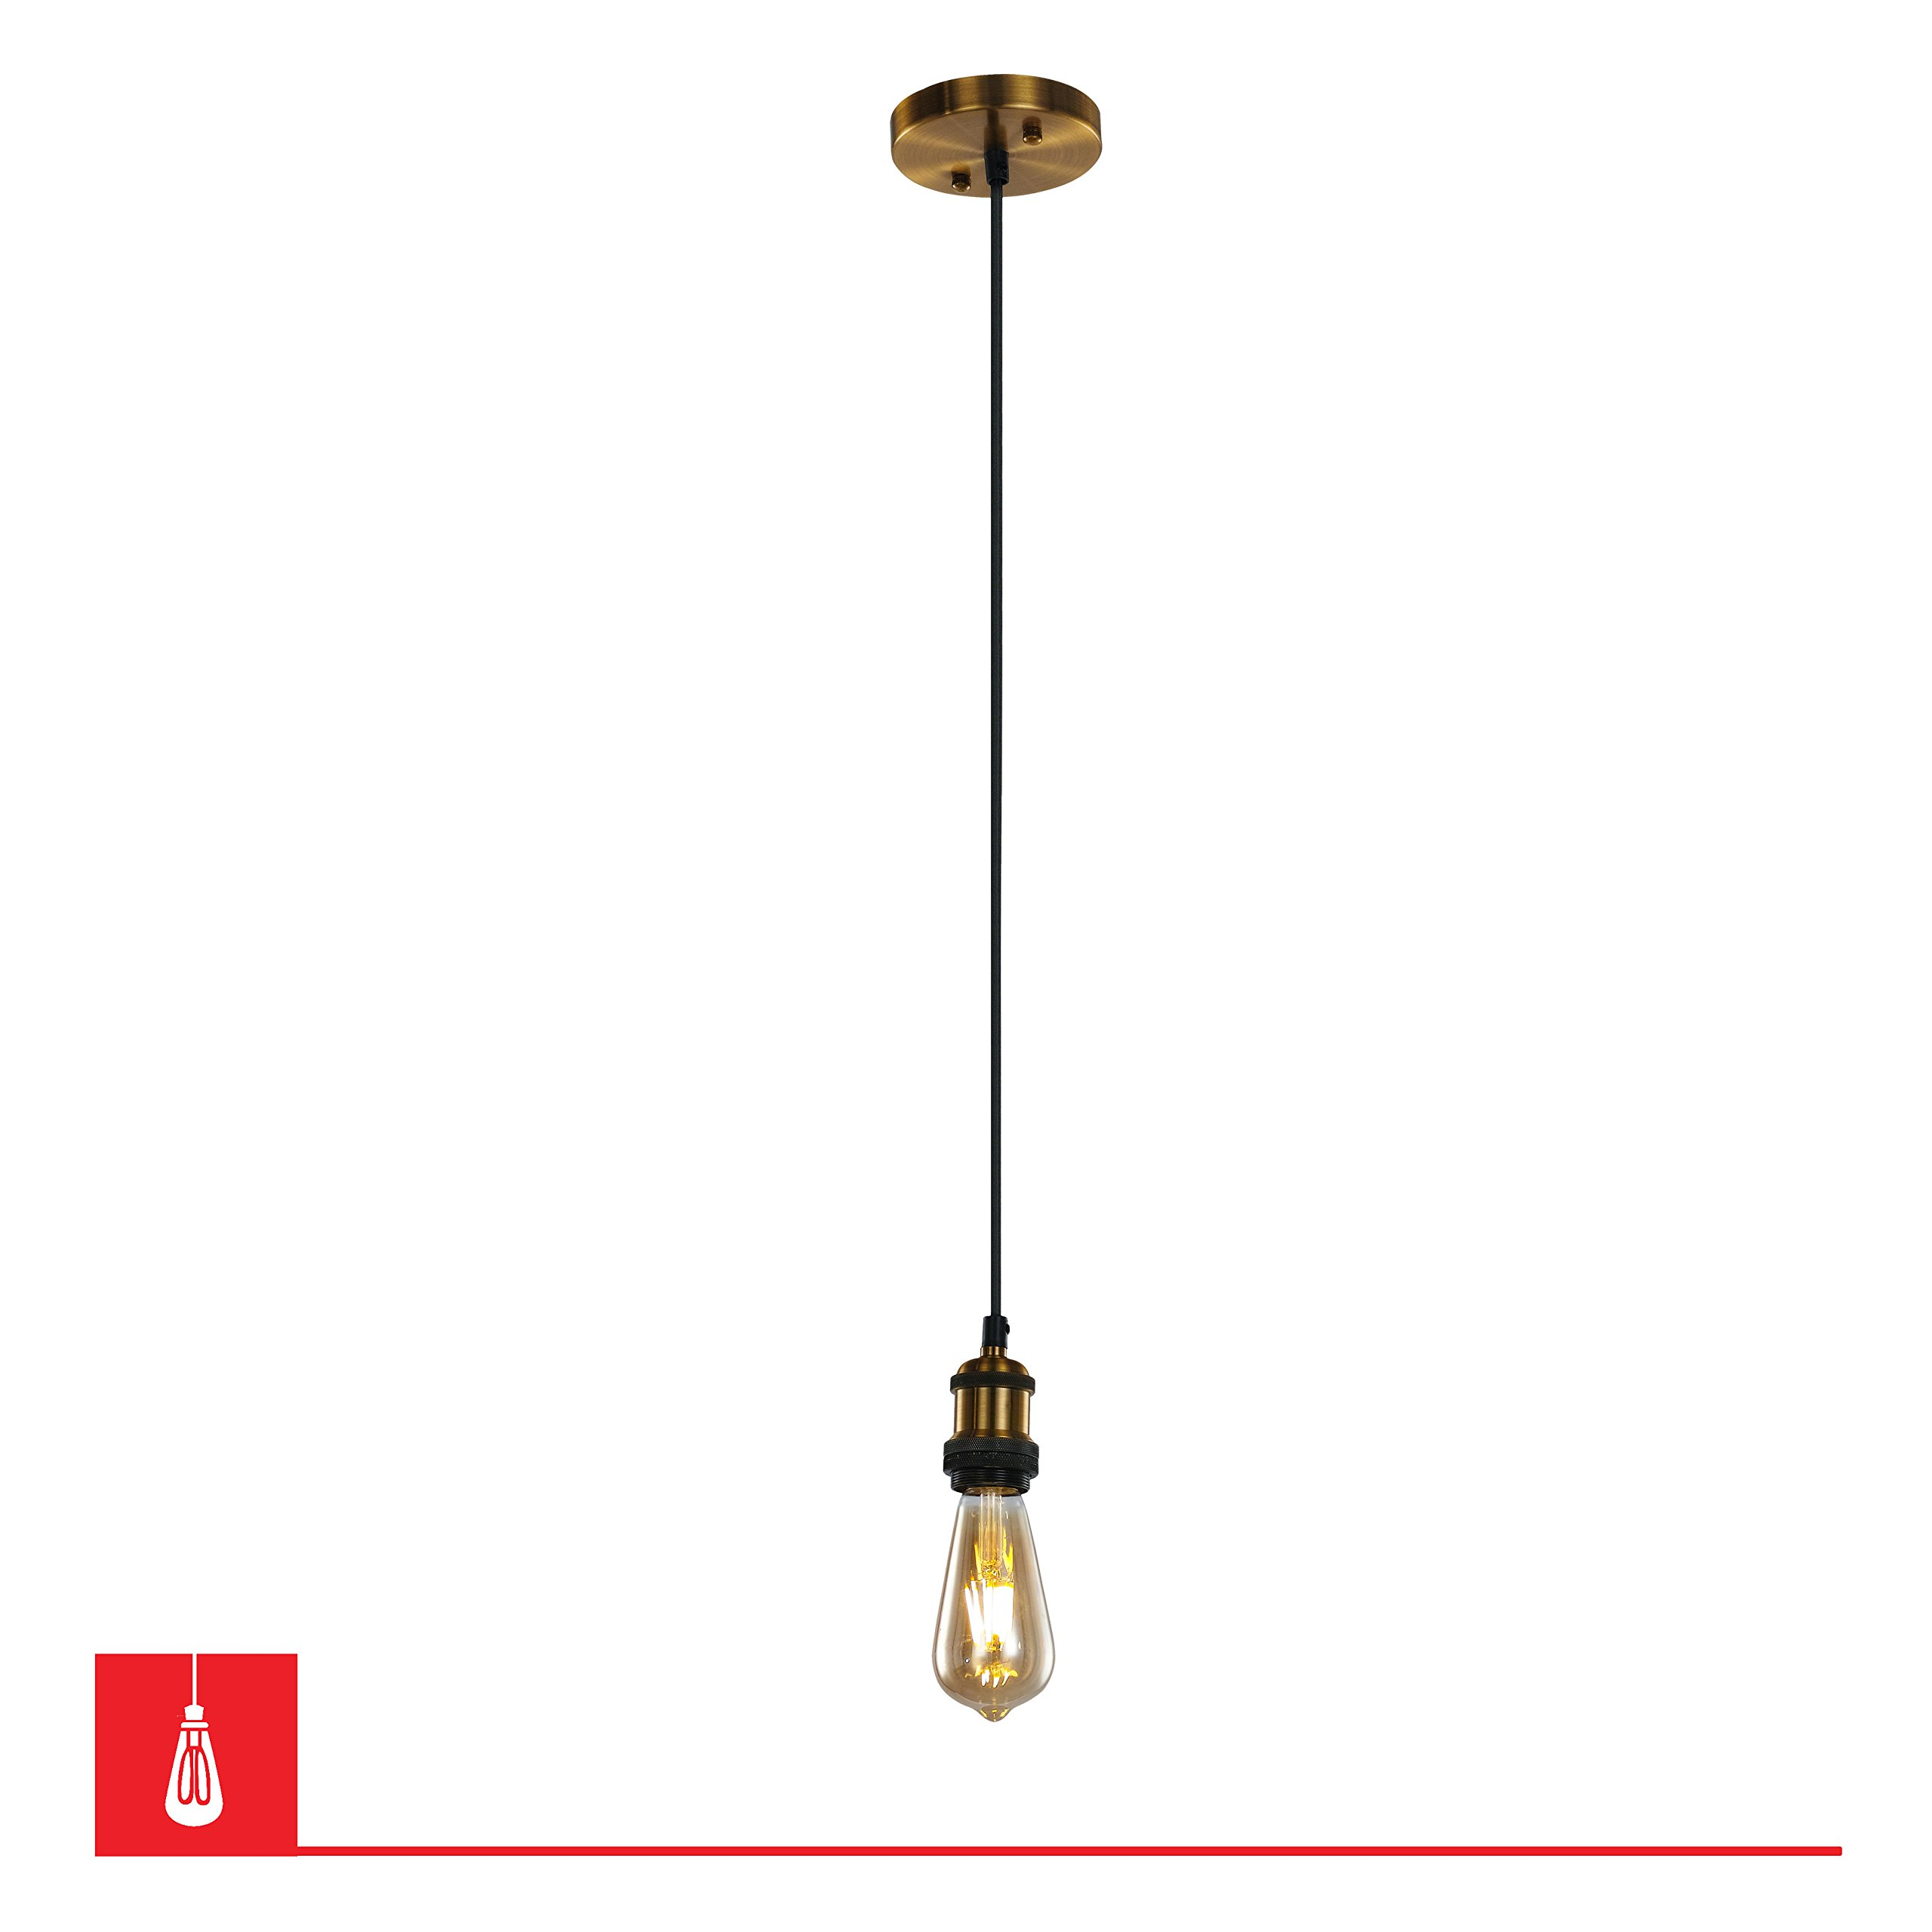 Stayton Single Bulb Pendant Fixture with Black Braided Cable – Antique Brass